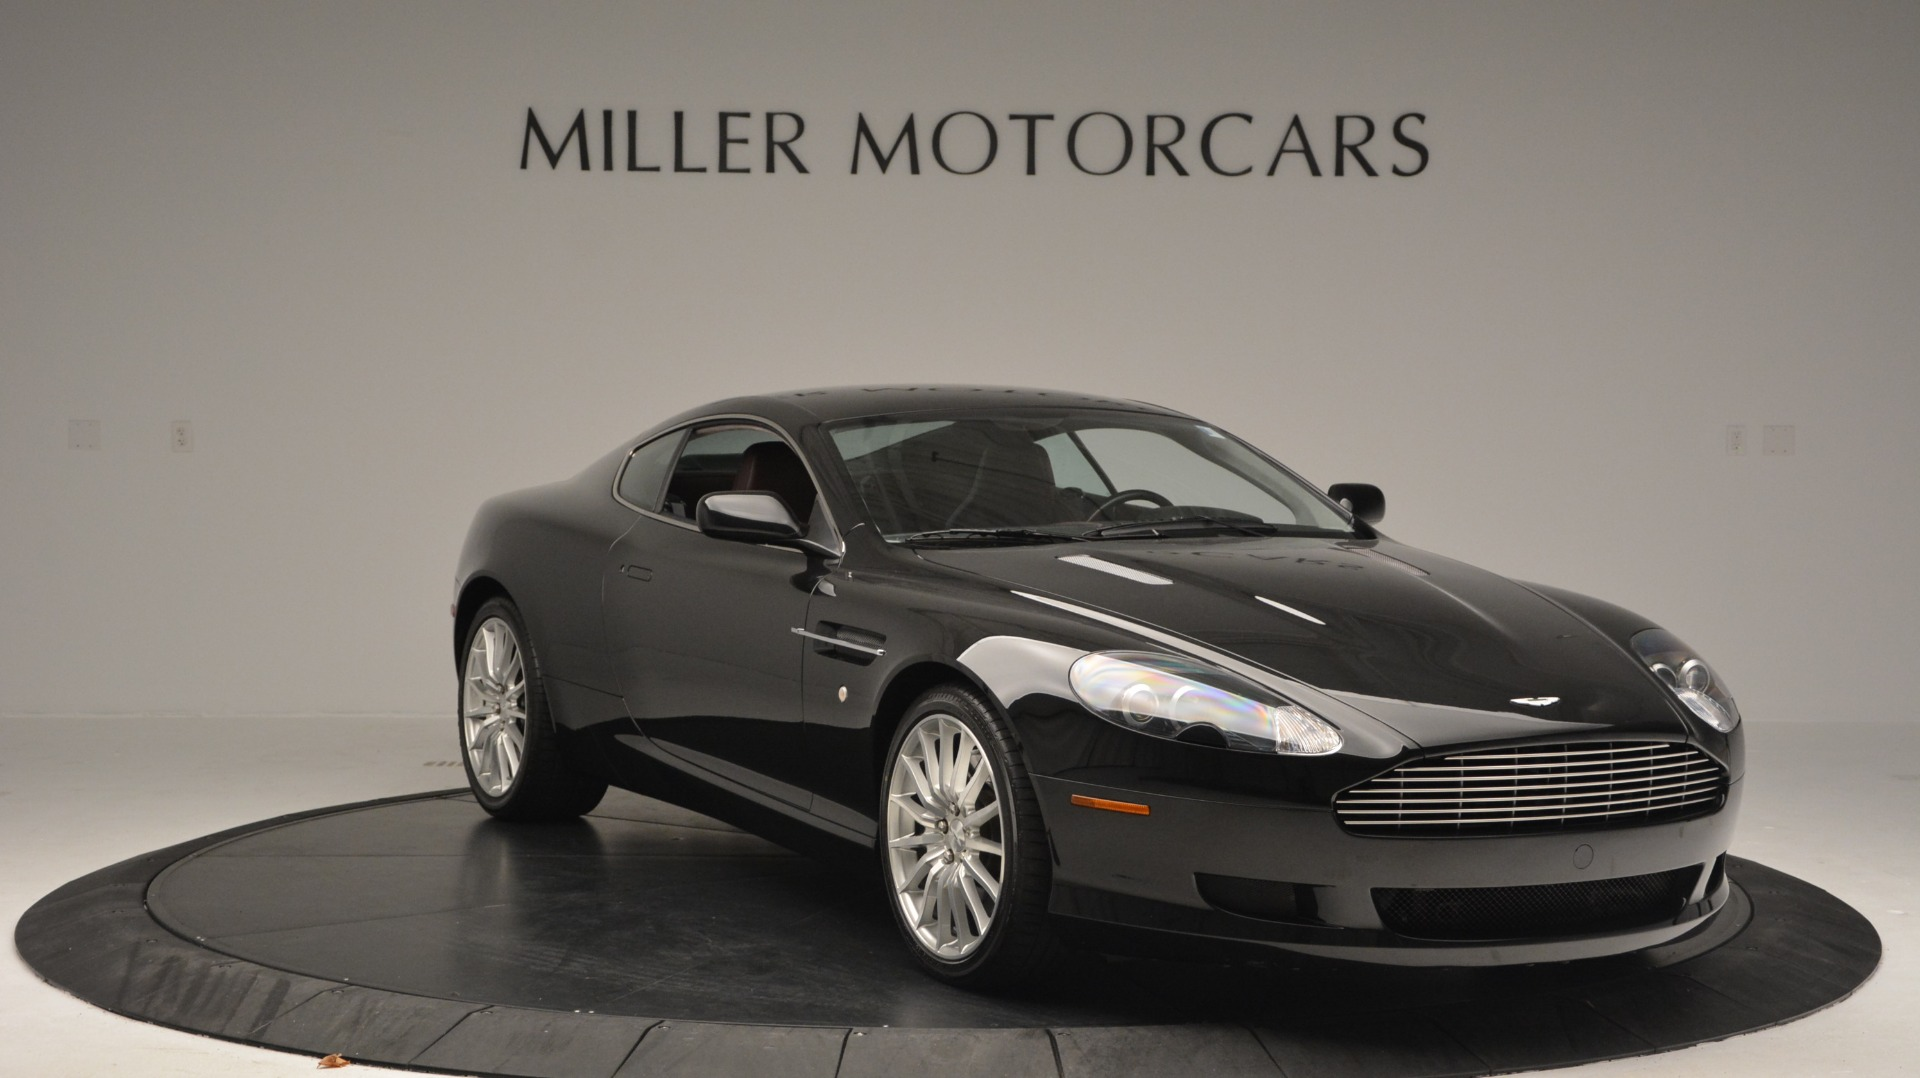 Used 2006 Aston Martin DB9  For Sale In Westport, CT 2832_p11